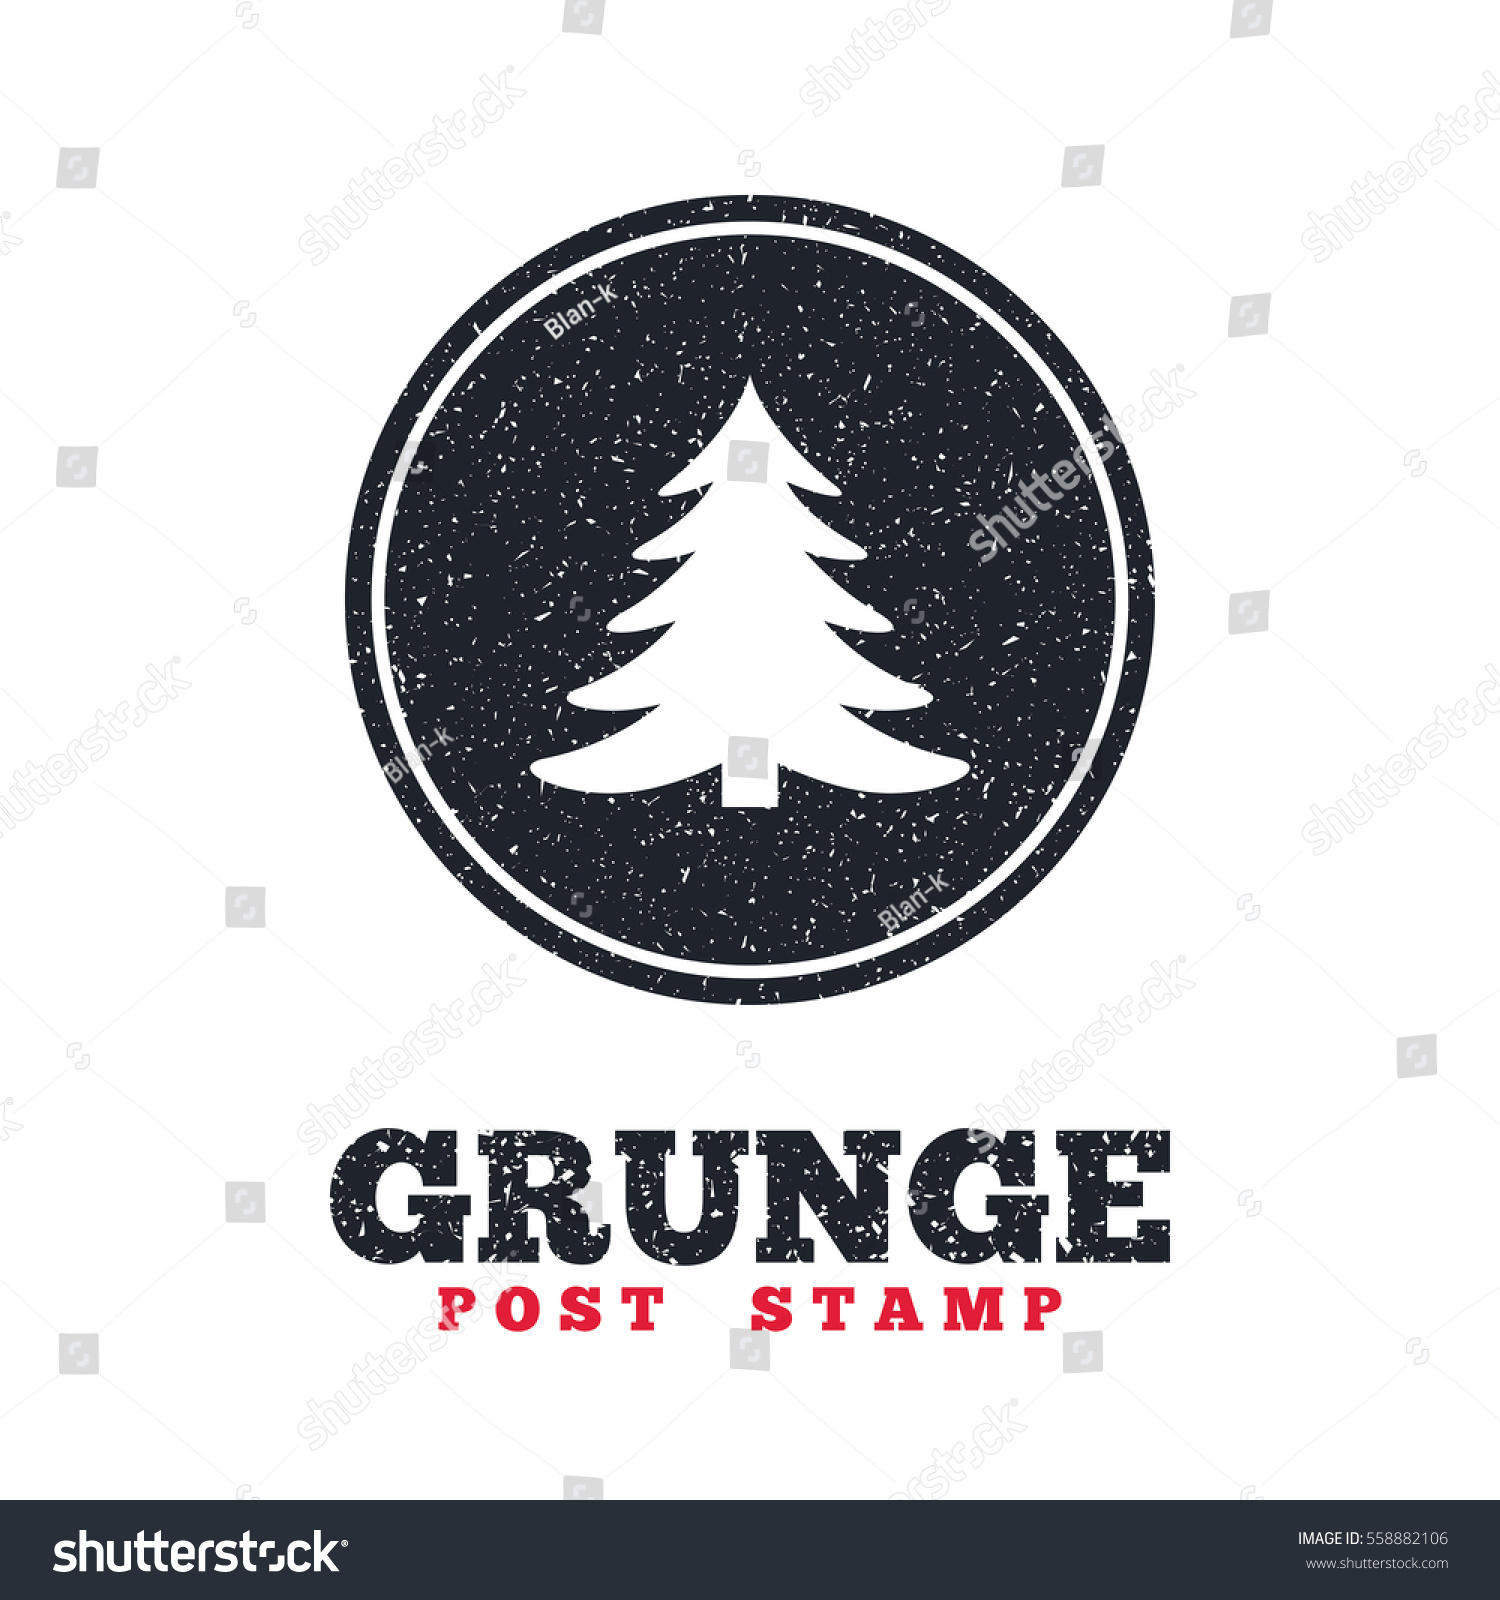 Grunge Post Stamp Circle Banner Label Stock Vector (Royalty Free ...